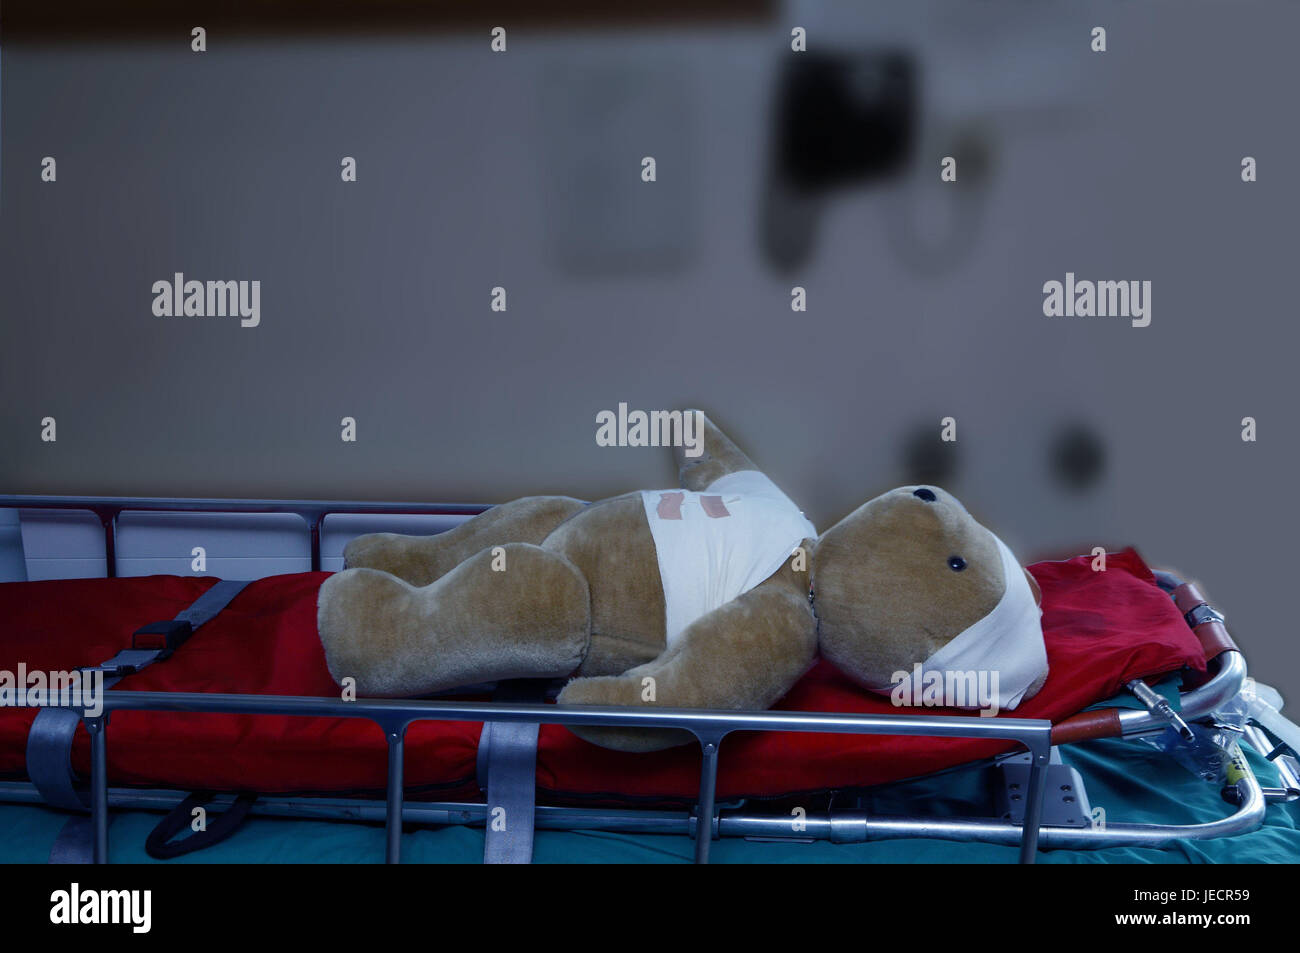 Clinic, rolling stretcher, teddy bear, association, emergency admittance, recording station, stretcher, Carrying, - Stock Image